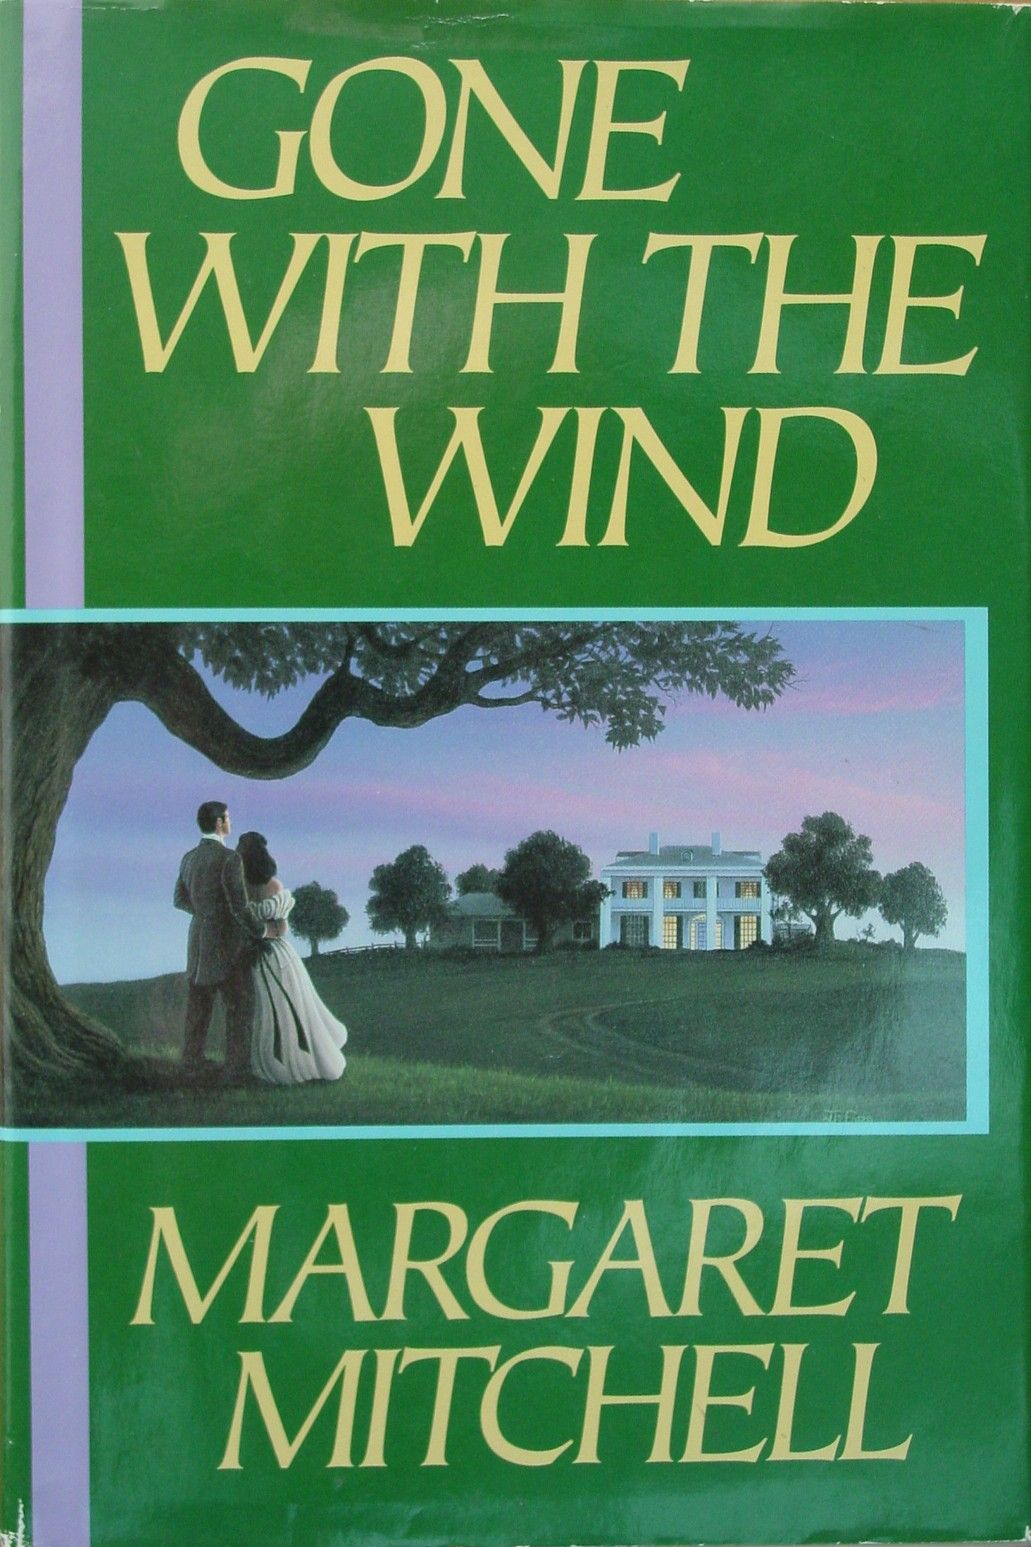 gone with the wind book report The color purple by alice walker buy now from  gone with the wind by margaret mitchell fiction their eyes were watching god by zora neale hurston  our editors select the one author and one book they believe to be most worthy of your attention and highlight them in our pro connect email alert.